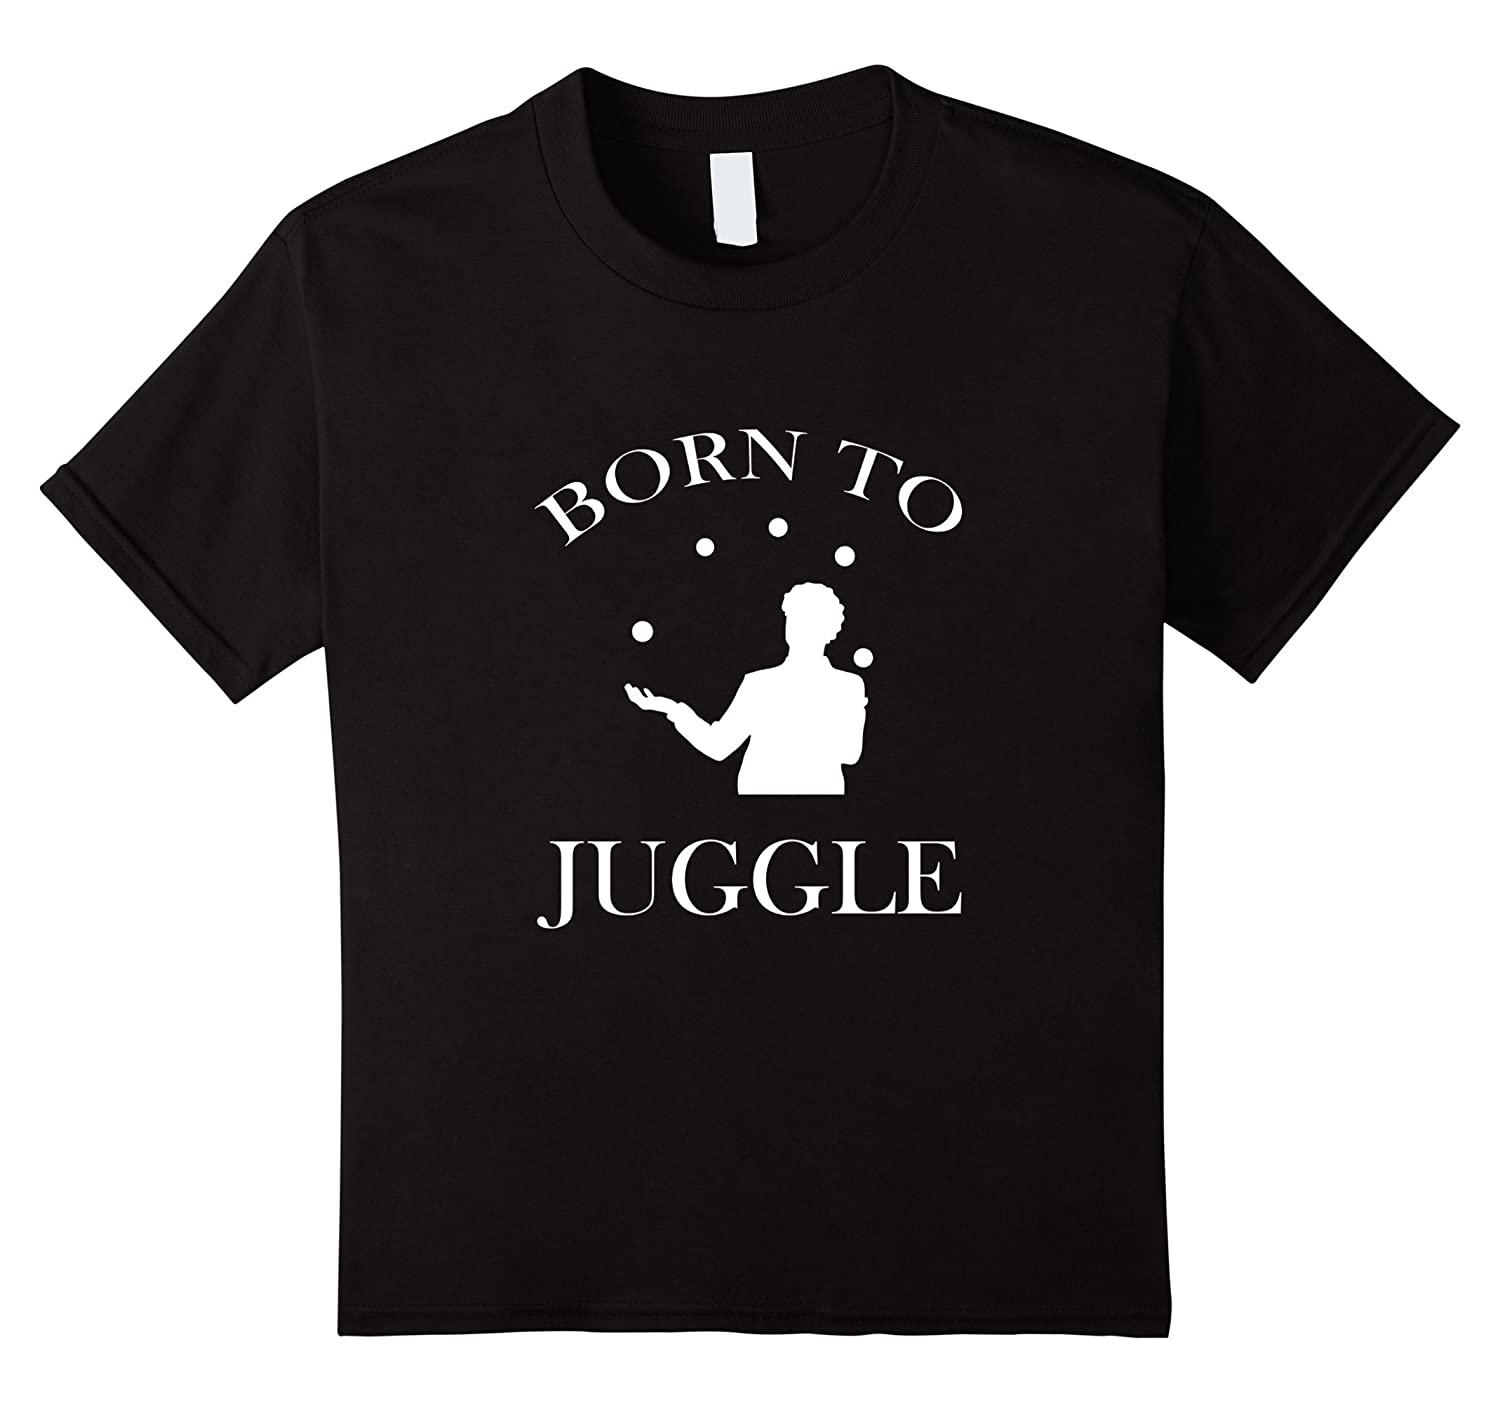 Womens Juggler Shirt Jugglers Large-Samdetee